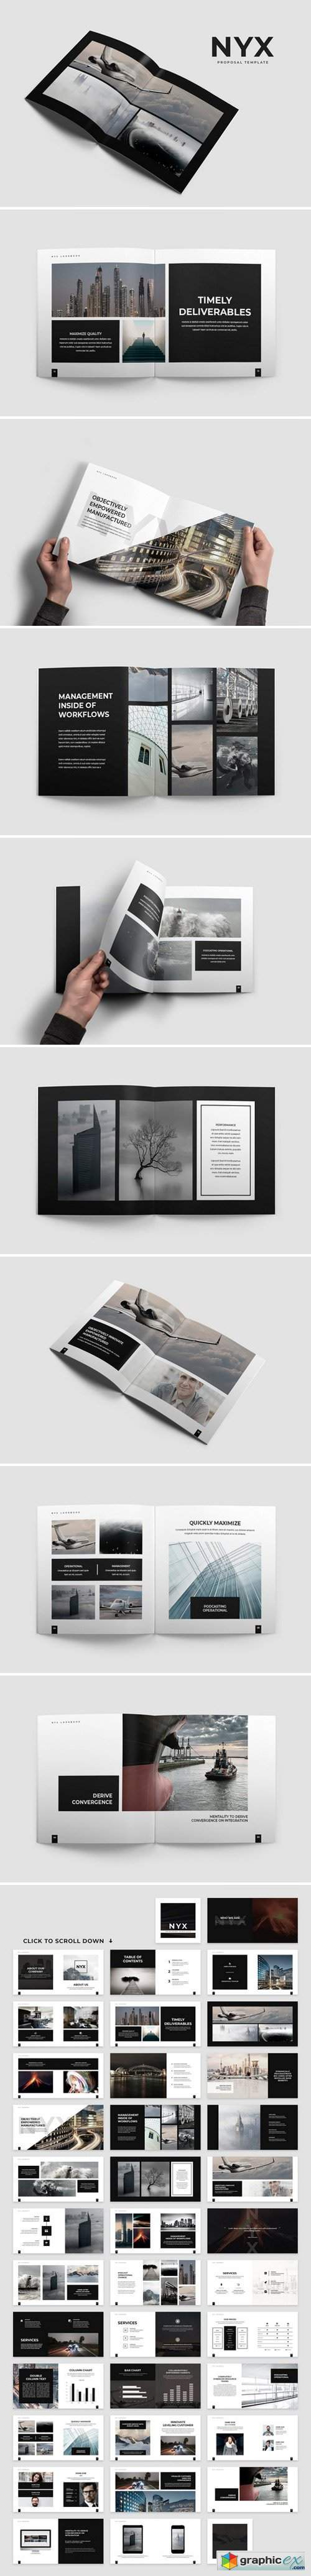 nyx lookbook template free download vector stock image photoshop icon